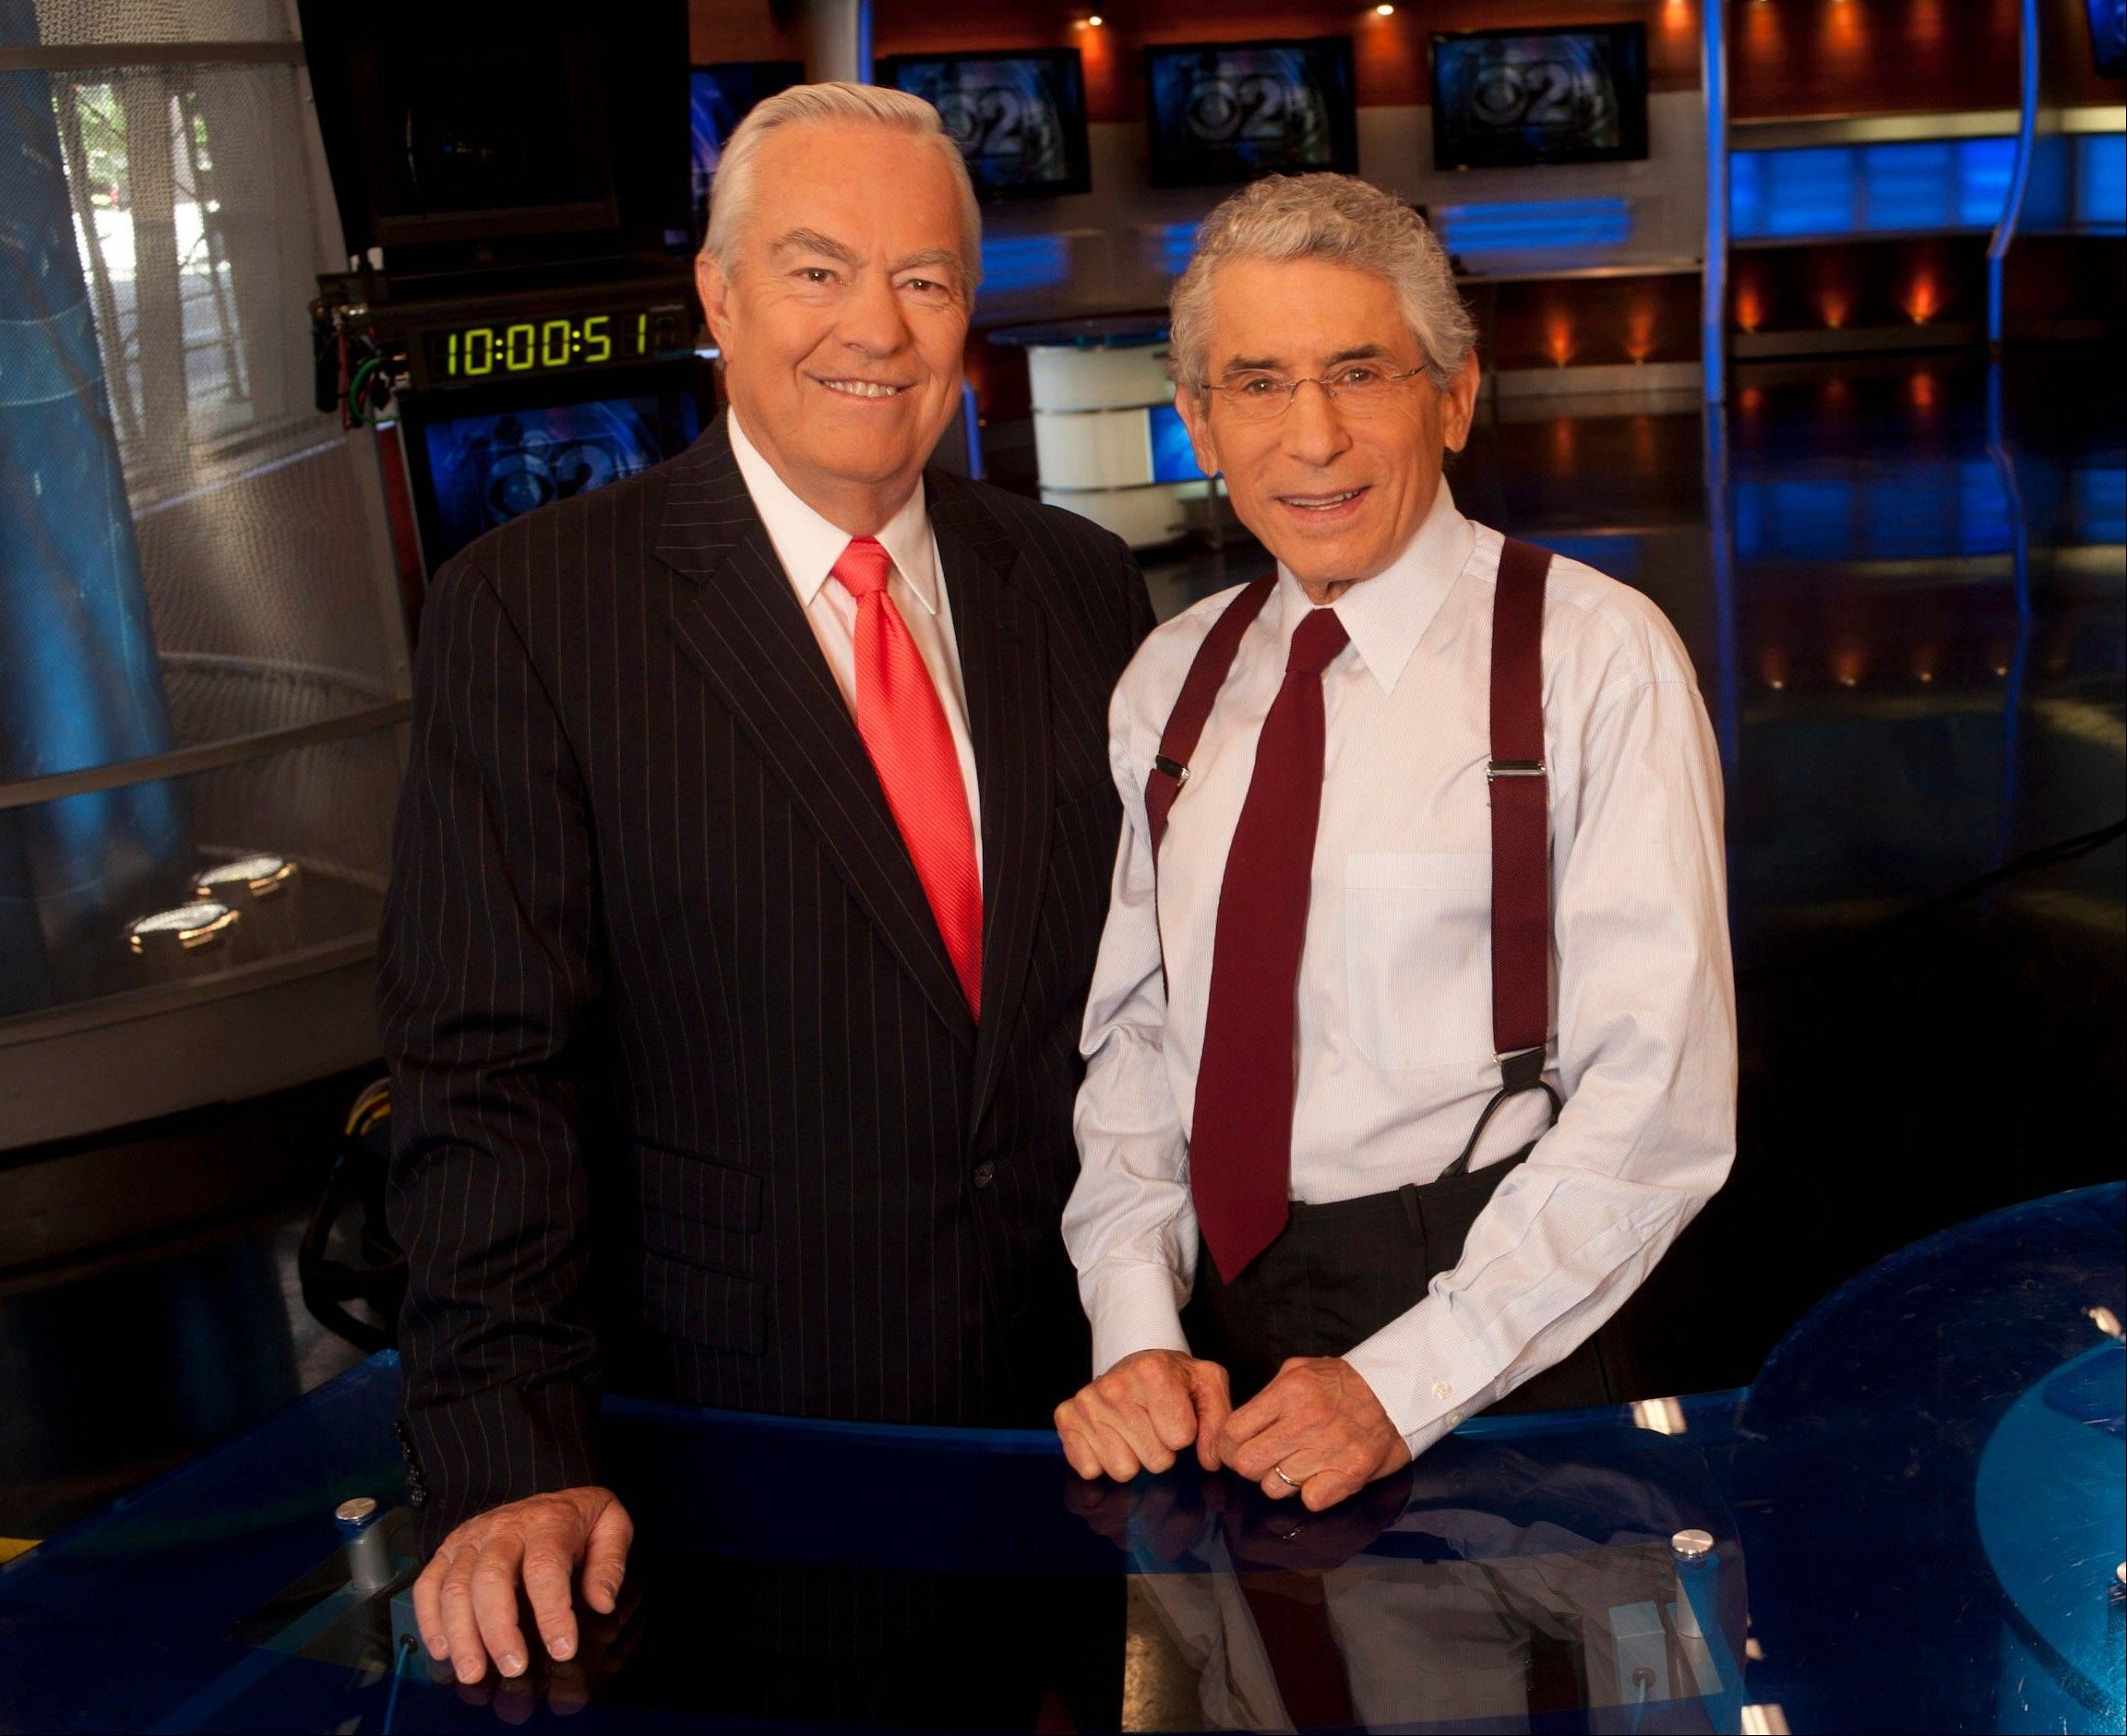 Bill Kurtis, left, and Walter Jacobson signed off as anchors after the 6 p.m. newscast Thursday at WBBM-TV Channel 2. The pair anchored the station�s top-rated 10 p.m. newscast from 1973 to 1982, and returned to the 6 p.m. slot in August 2010.